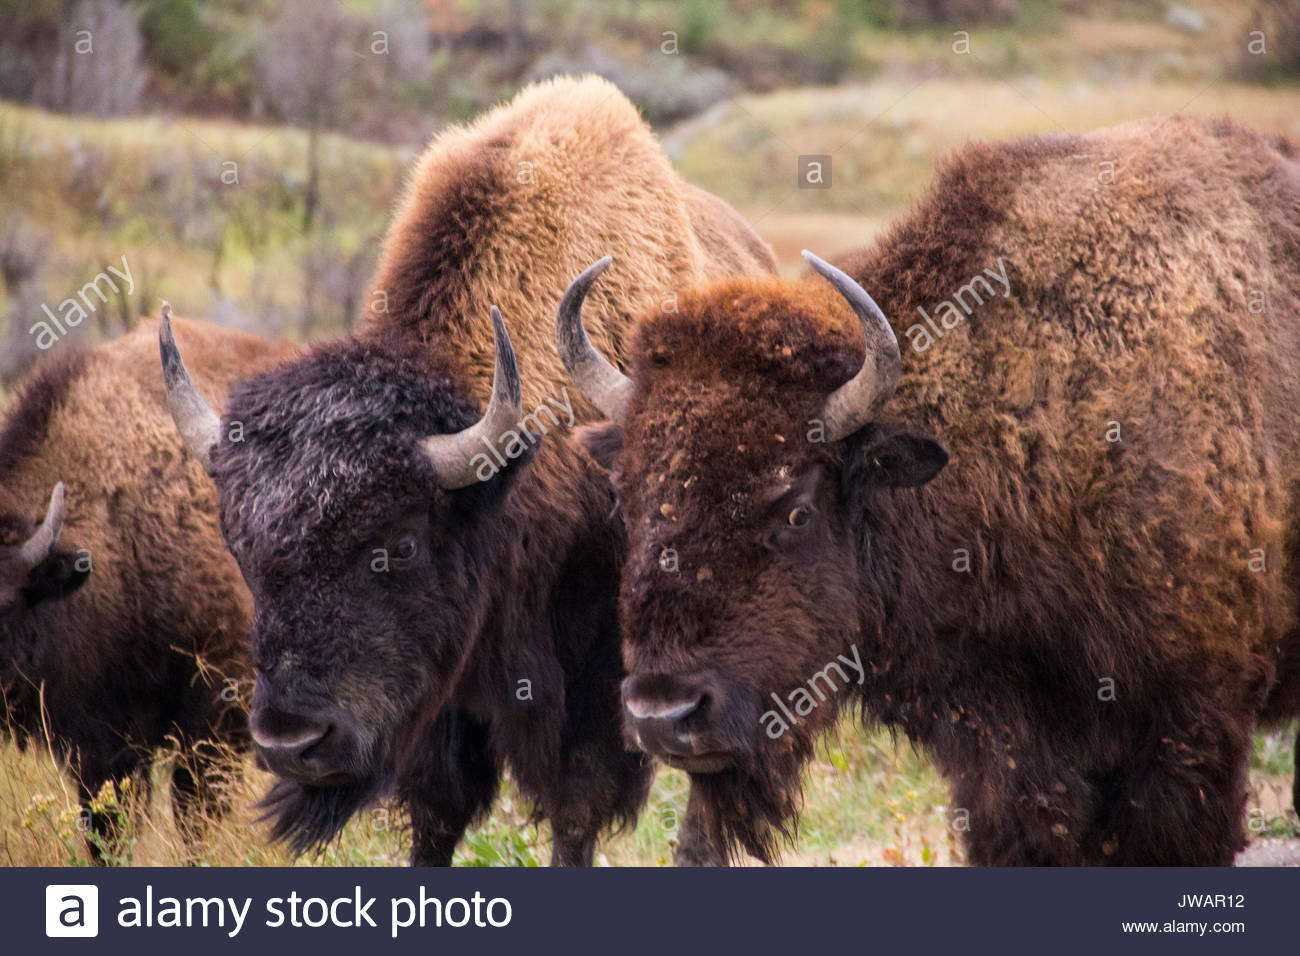 A trio of hump-backed wild American bison. - Stock Image